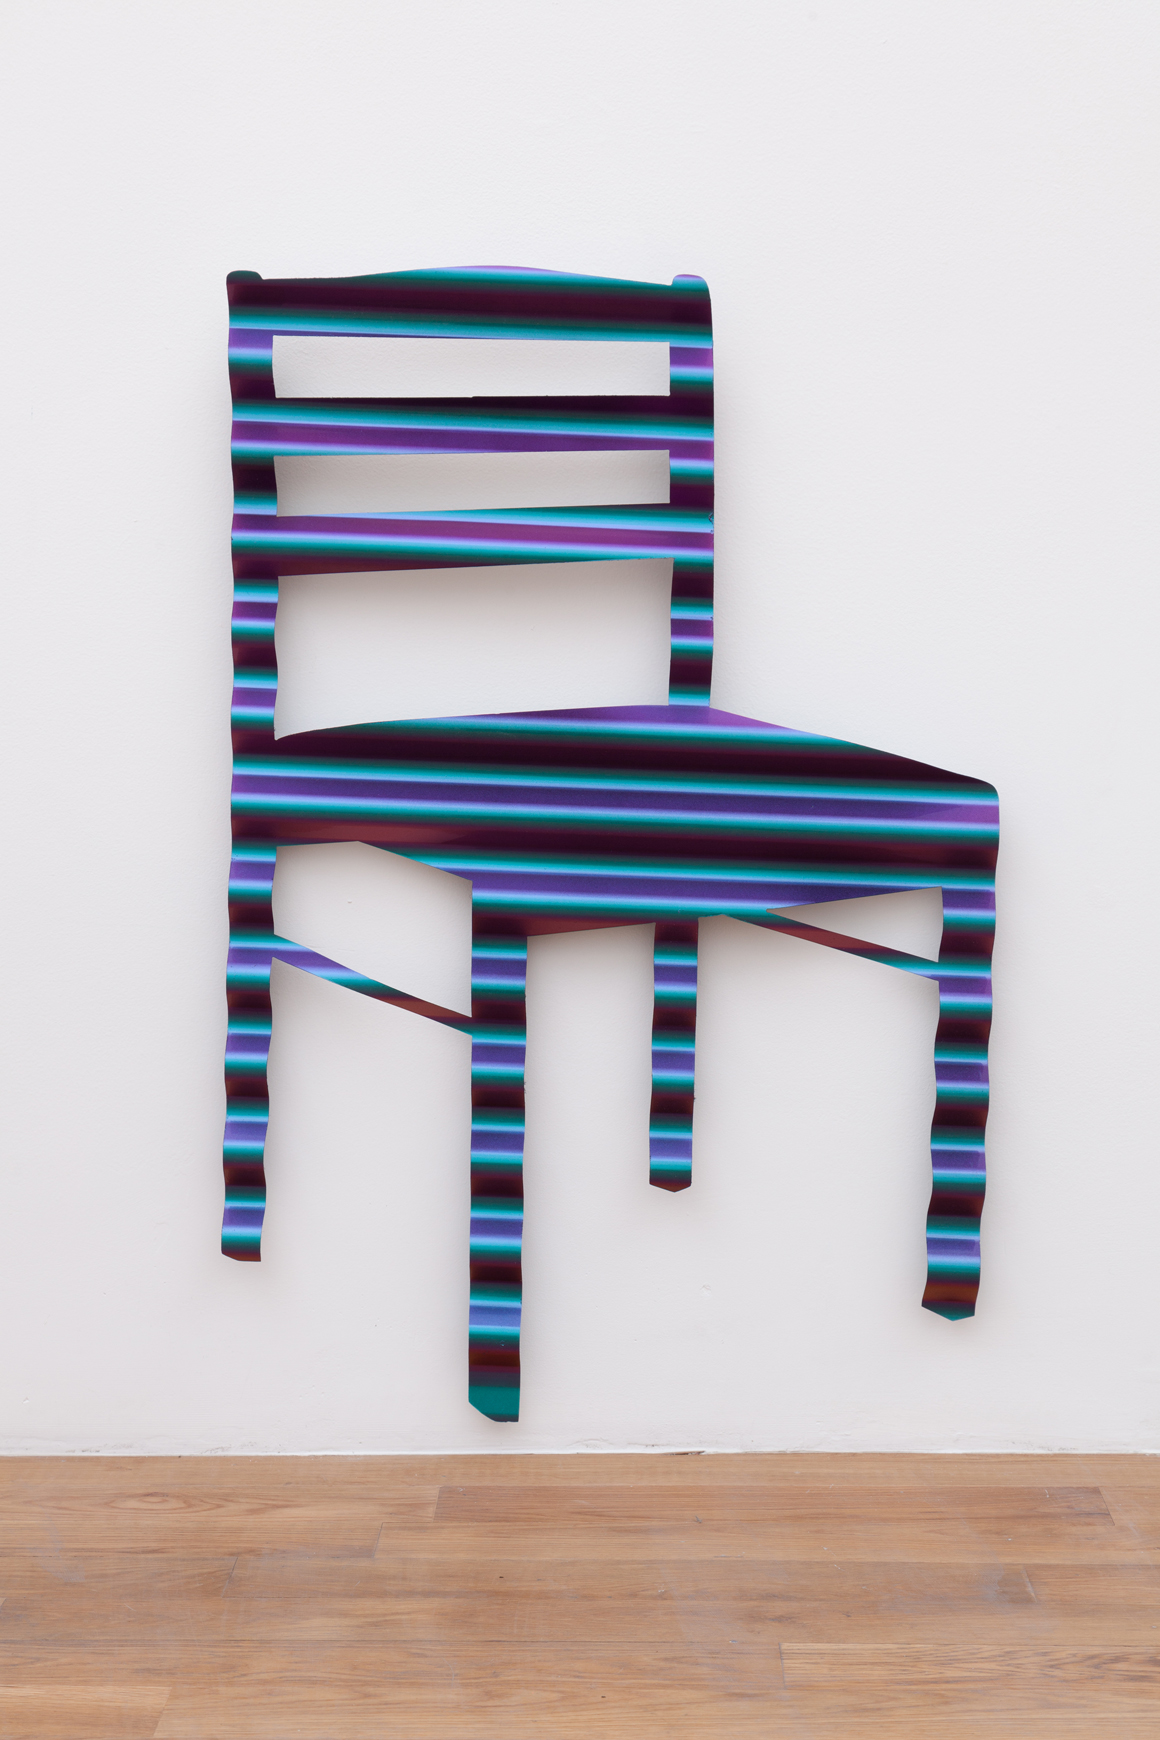 "<p><span class=""name"">Dmitri Obergfell</span><br><em>2 Chairs</em><span class='media'>Chameleon auto paint on corrugated steel</span>35 x 23 in (88.9 x 58.4 cm)<br>2017<br><a class='inquire' href='mailto:info@gildargallery.com?subject=Artwork Inquiry DOBE0028&body=I am interested in finding out more about 2 Chairs by Dmitri Obergfell'>Inquire</a></p>"